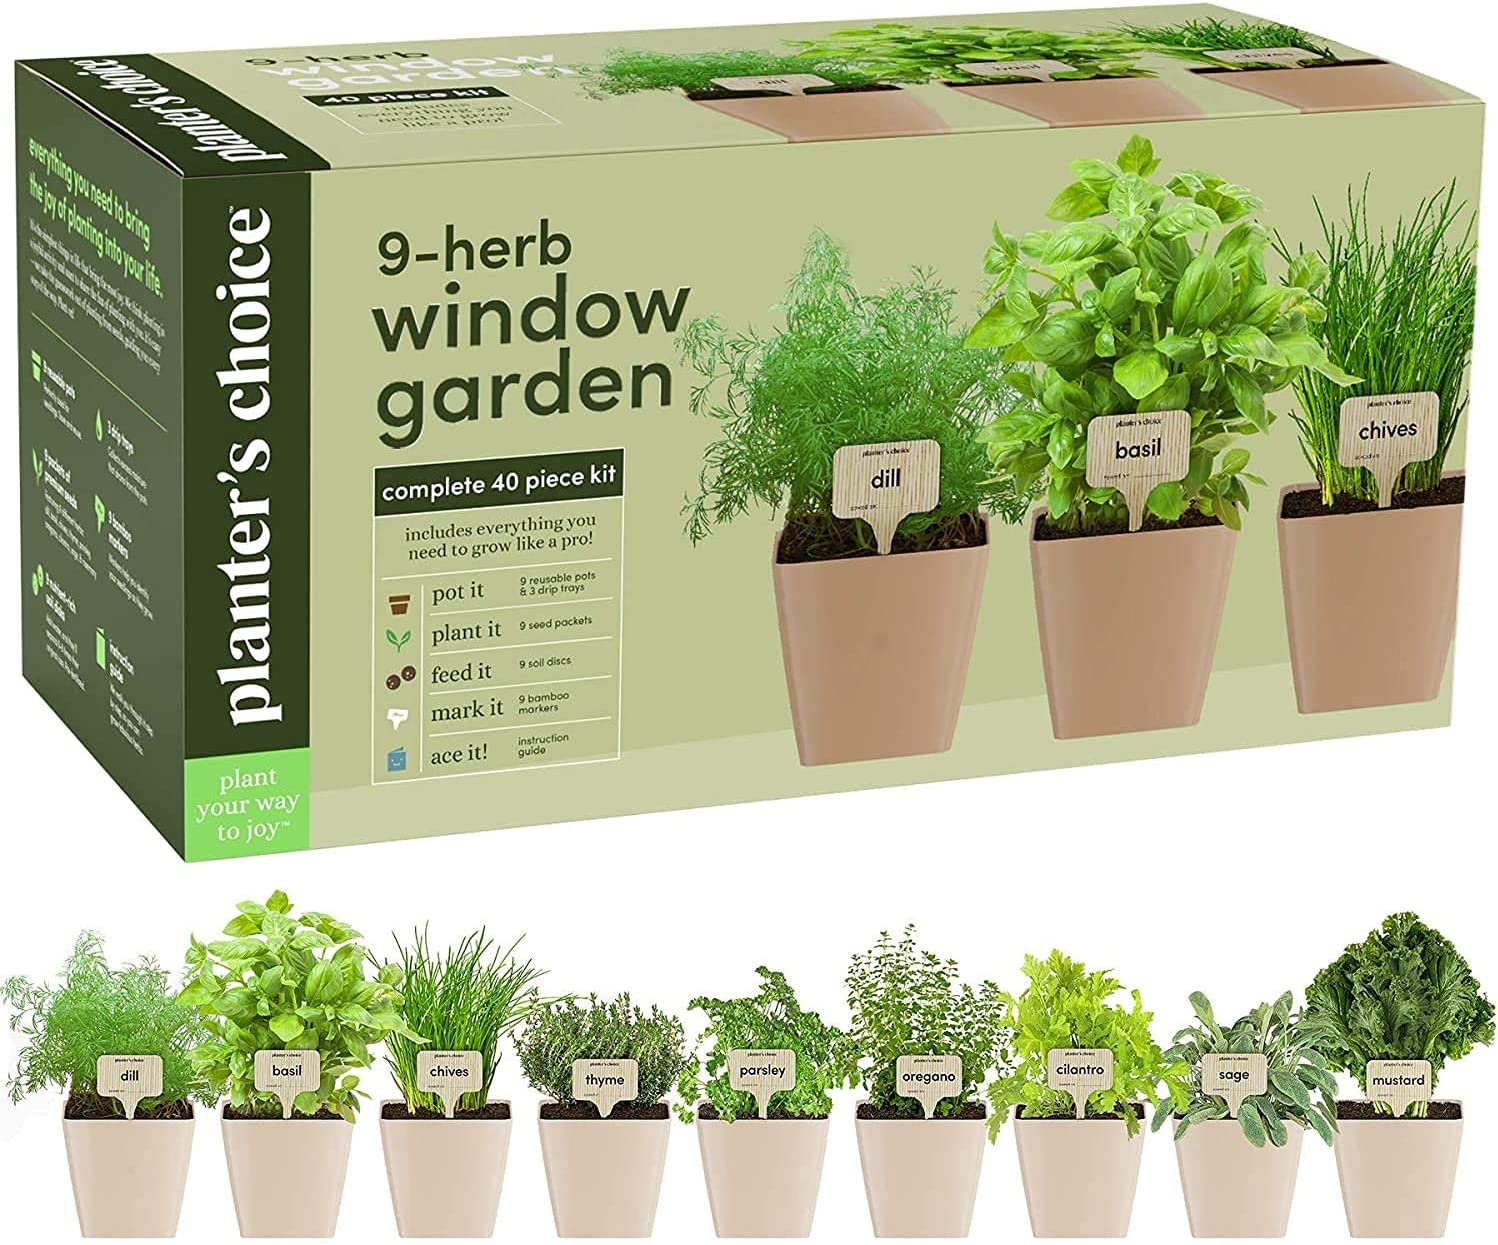 9 Herb Window Garden   Indoor Herb Growing Kit   Kitchen Windowsill Starter  Kit   Easily Grow 9 Herbs Plants from Scratch with Comprehensive Guide   ...